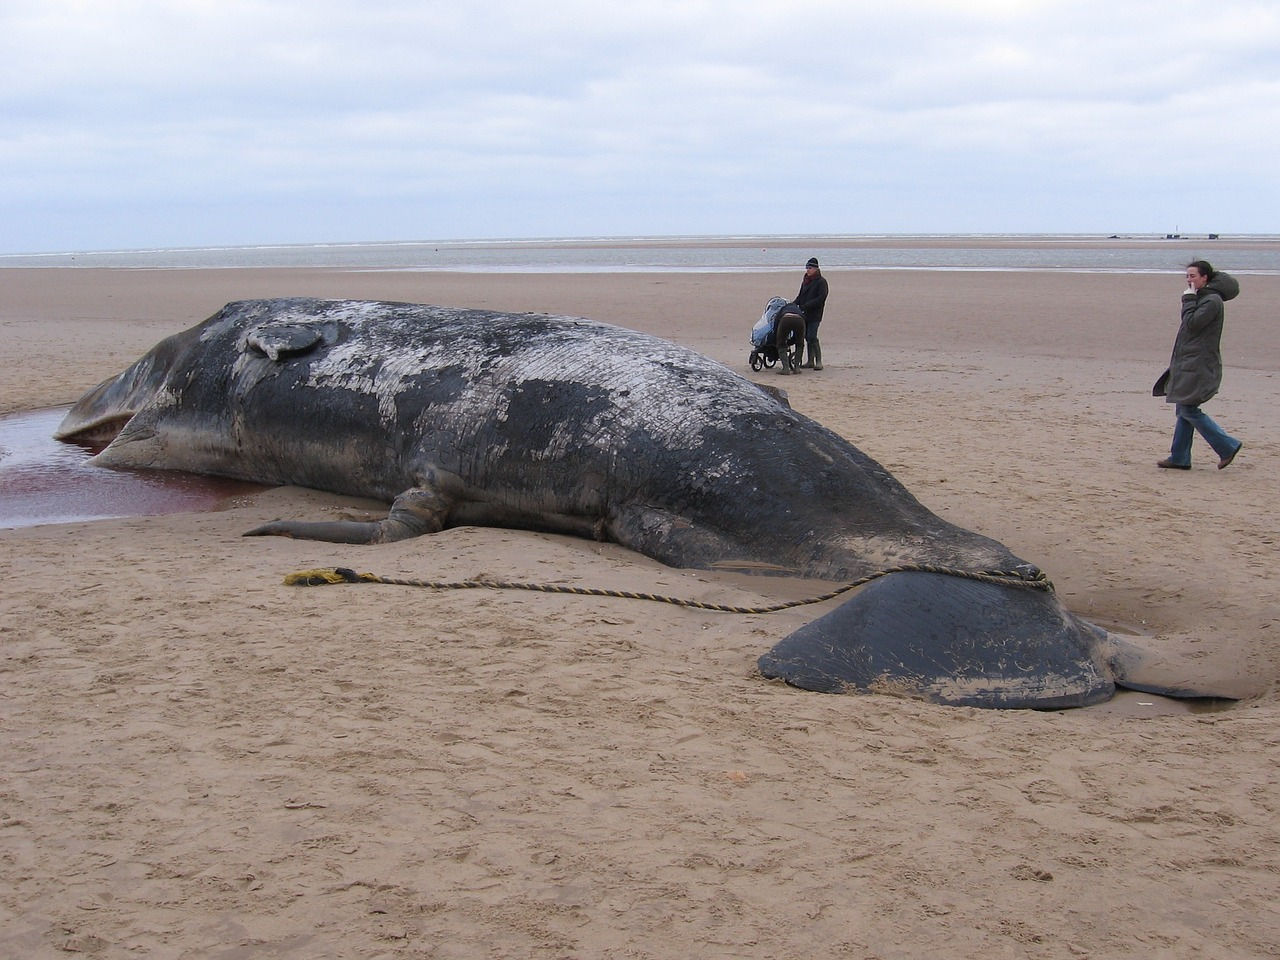 A beached whale that somehow navigated far away from its usual path.